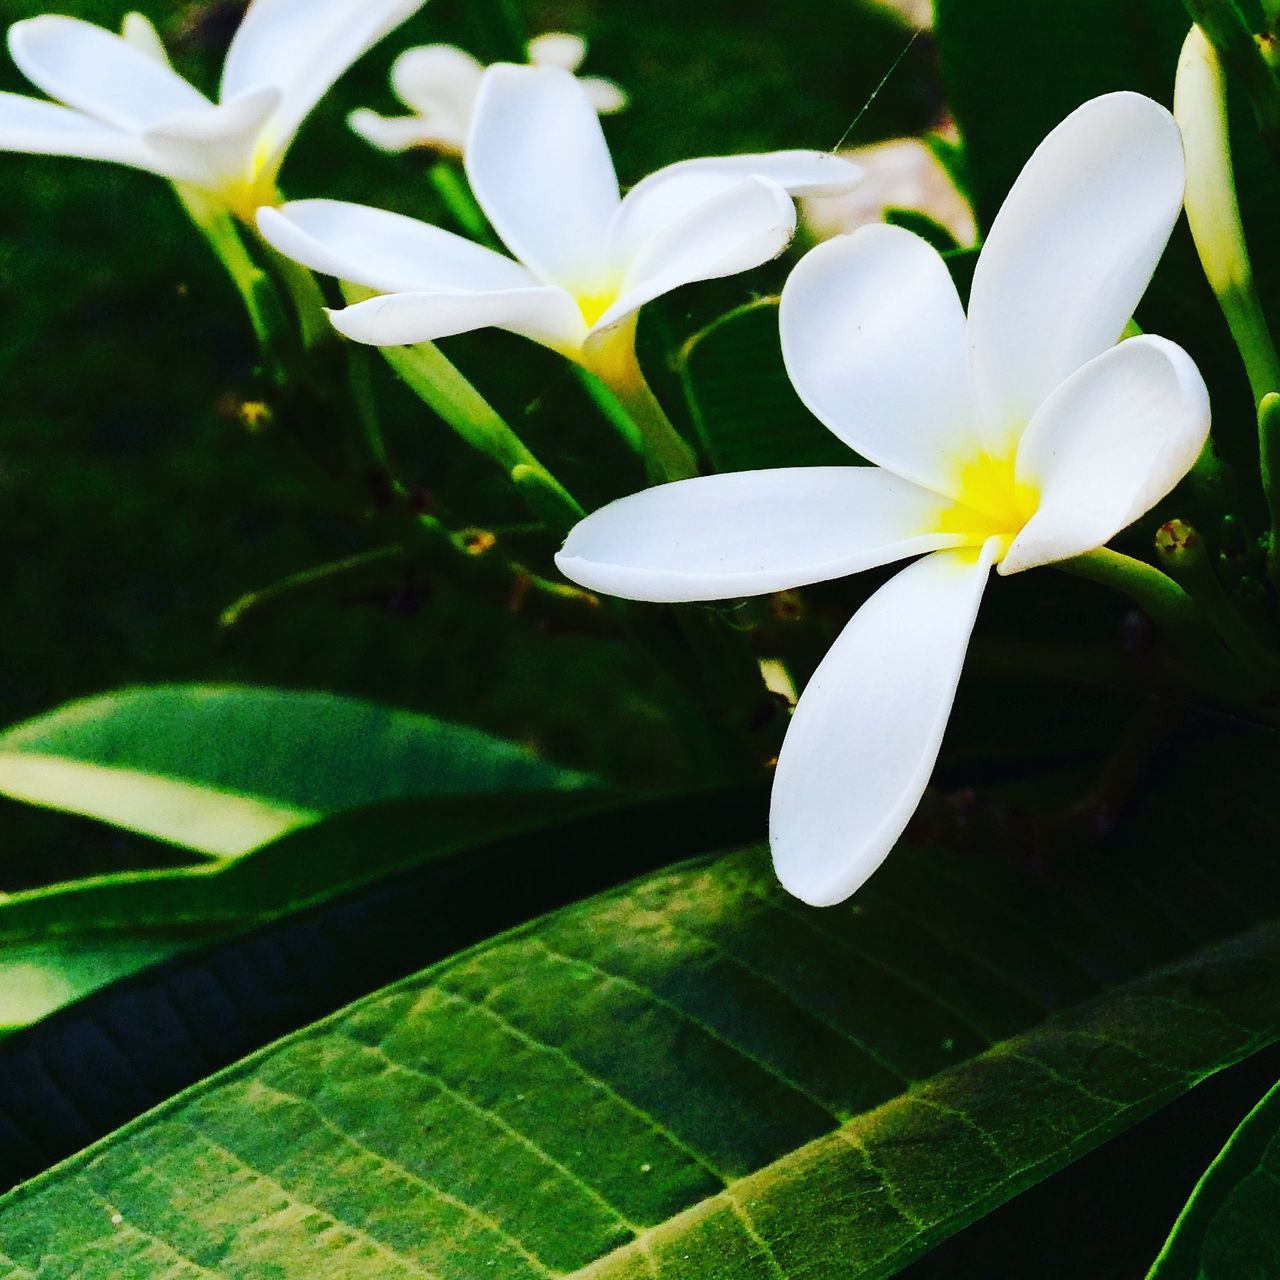 Nature Growth Beauty In Nature Freshness Flower Plant Close-up Green Color Flower Head Fragility No People Leaf Outdoors Day